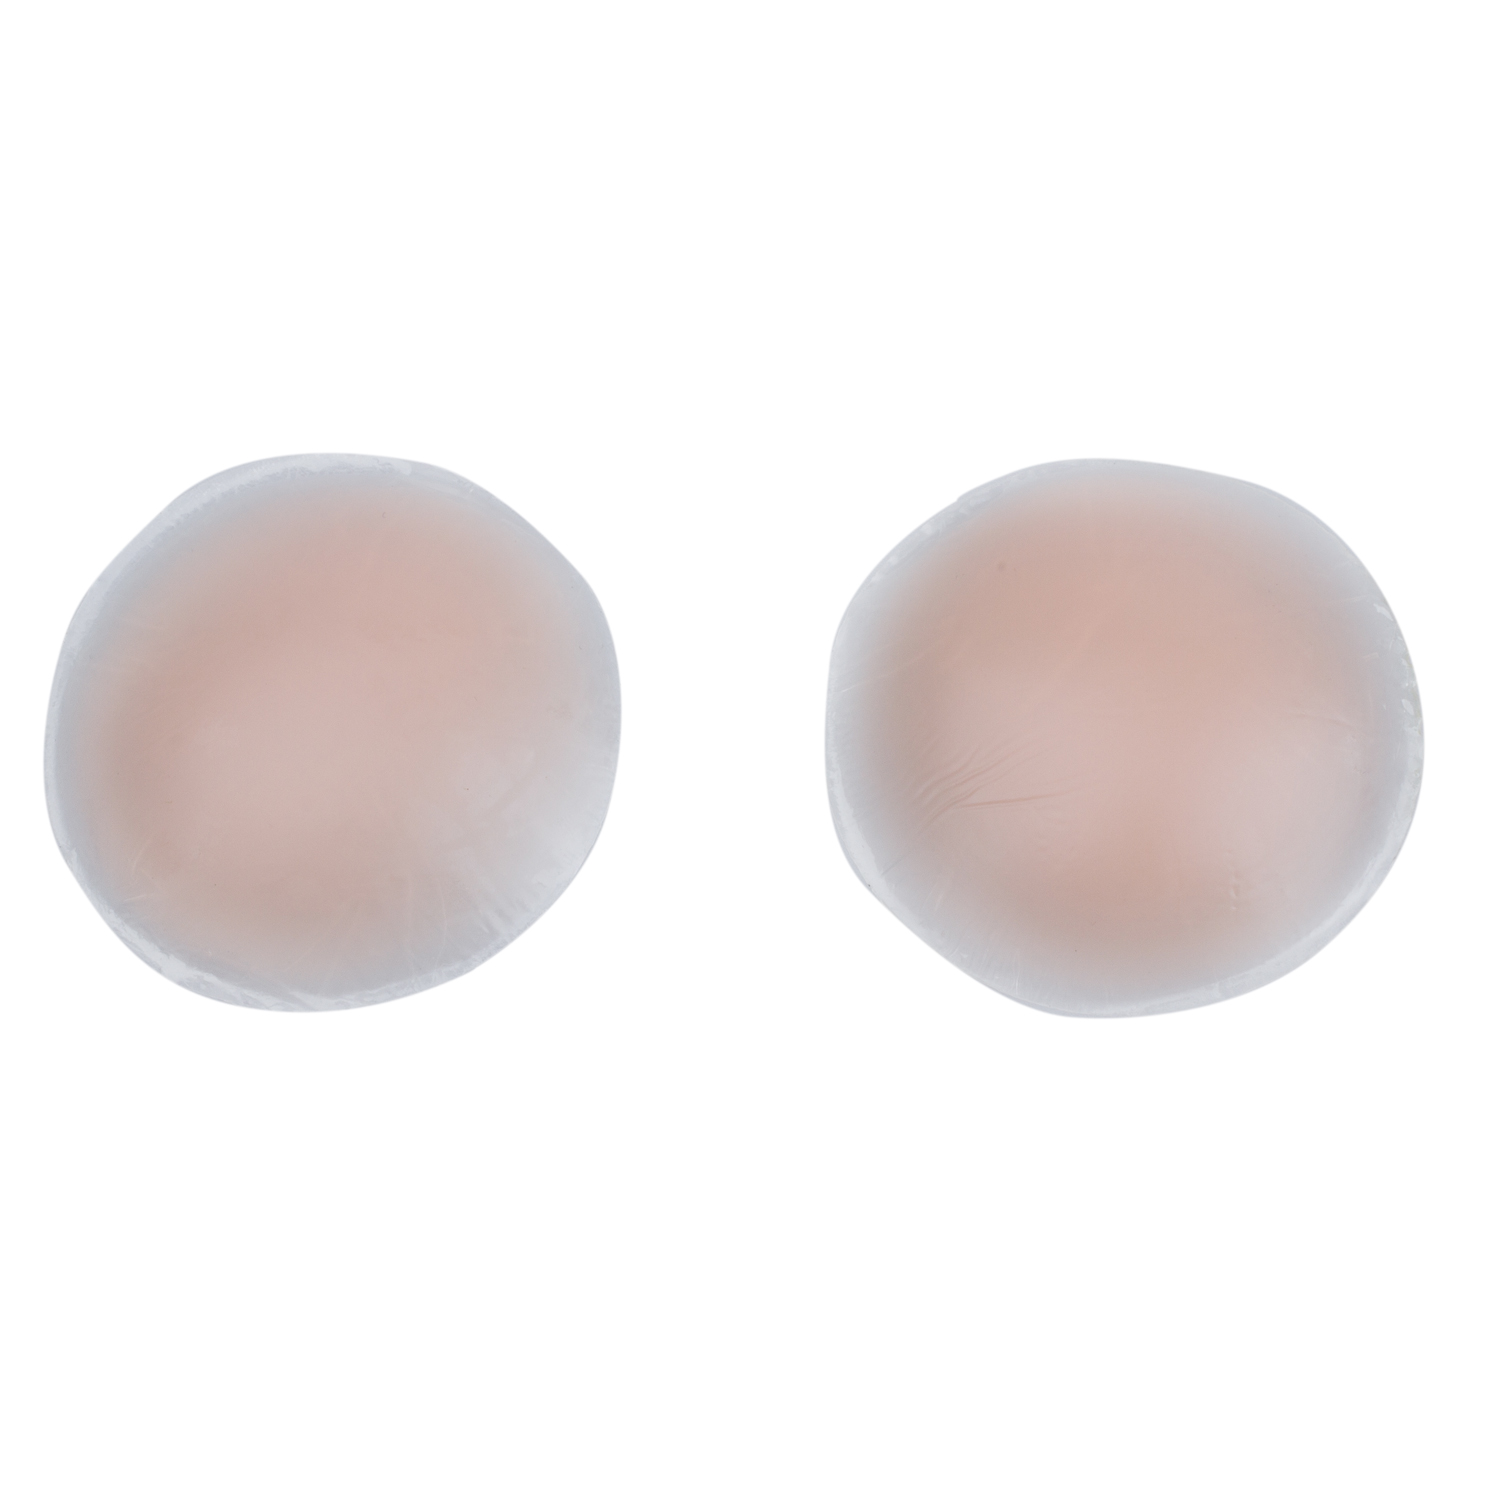 Buy Reusable Adhesive Silicone Nipple Cover Breast Pads